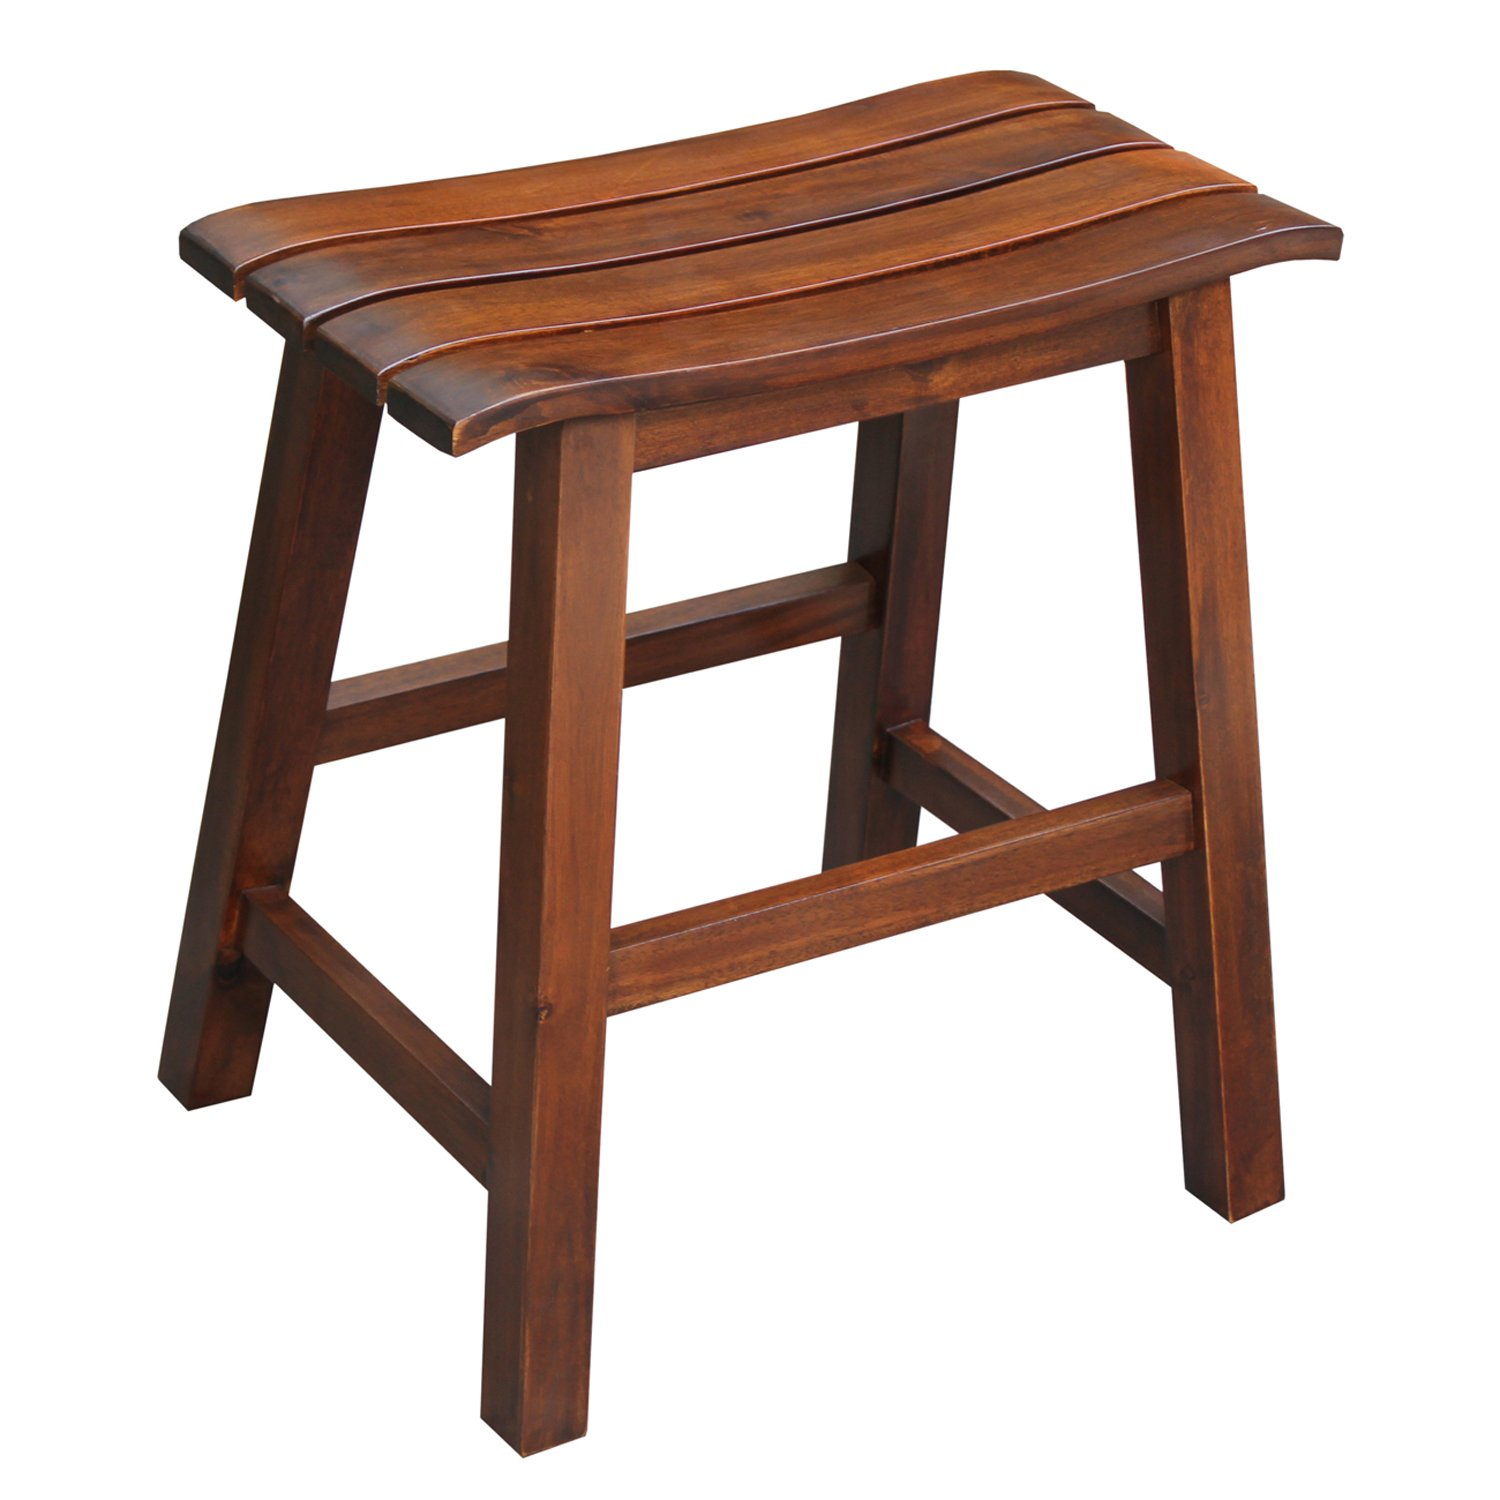 International Concepts Slat Seat Stool, 18-Inch Seat Height, Espresso